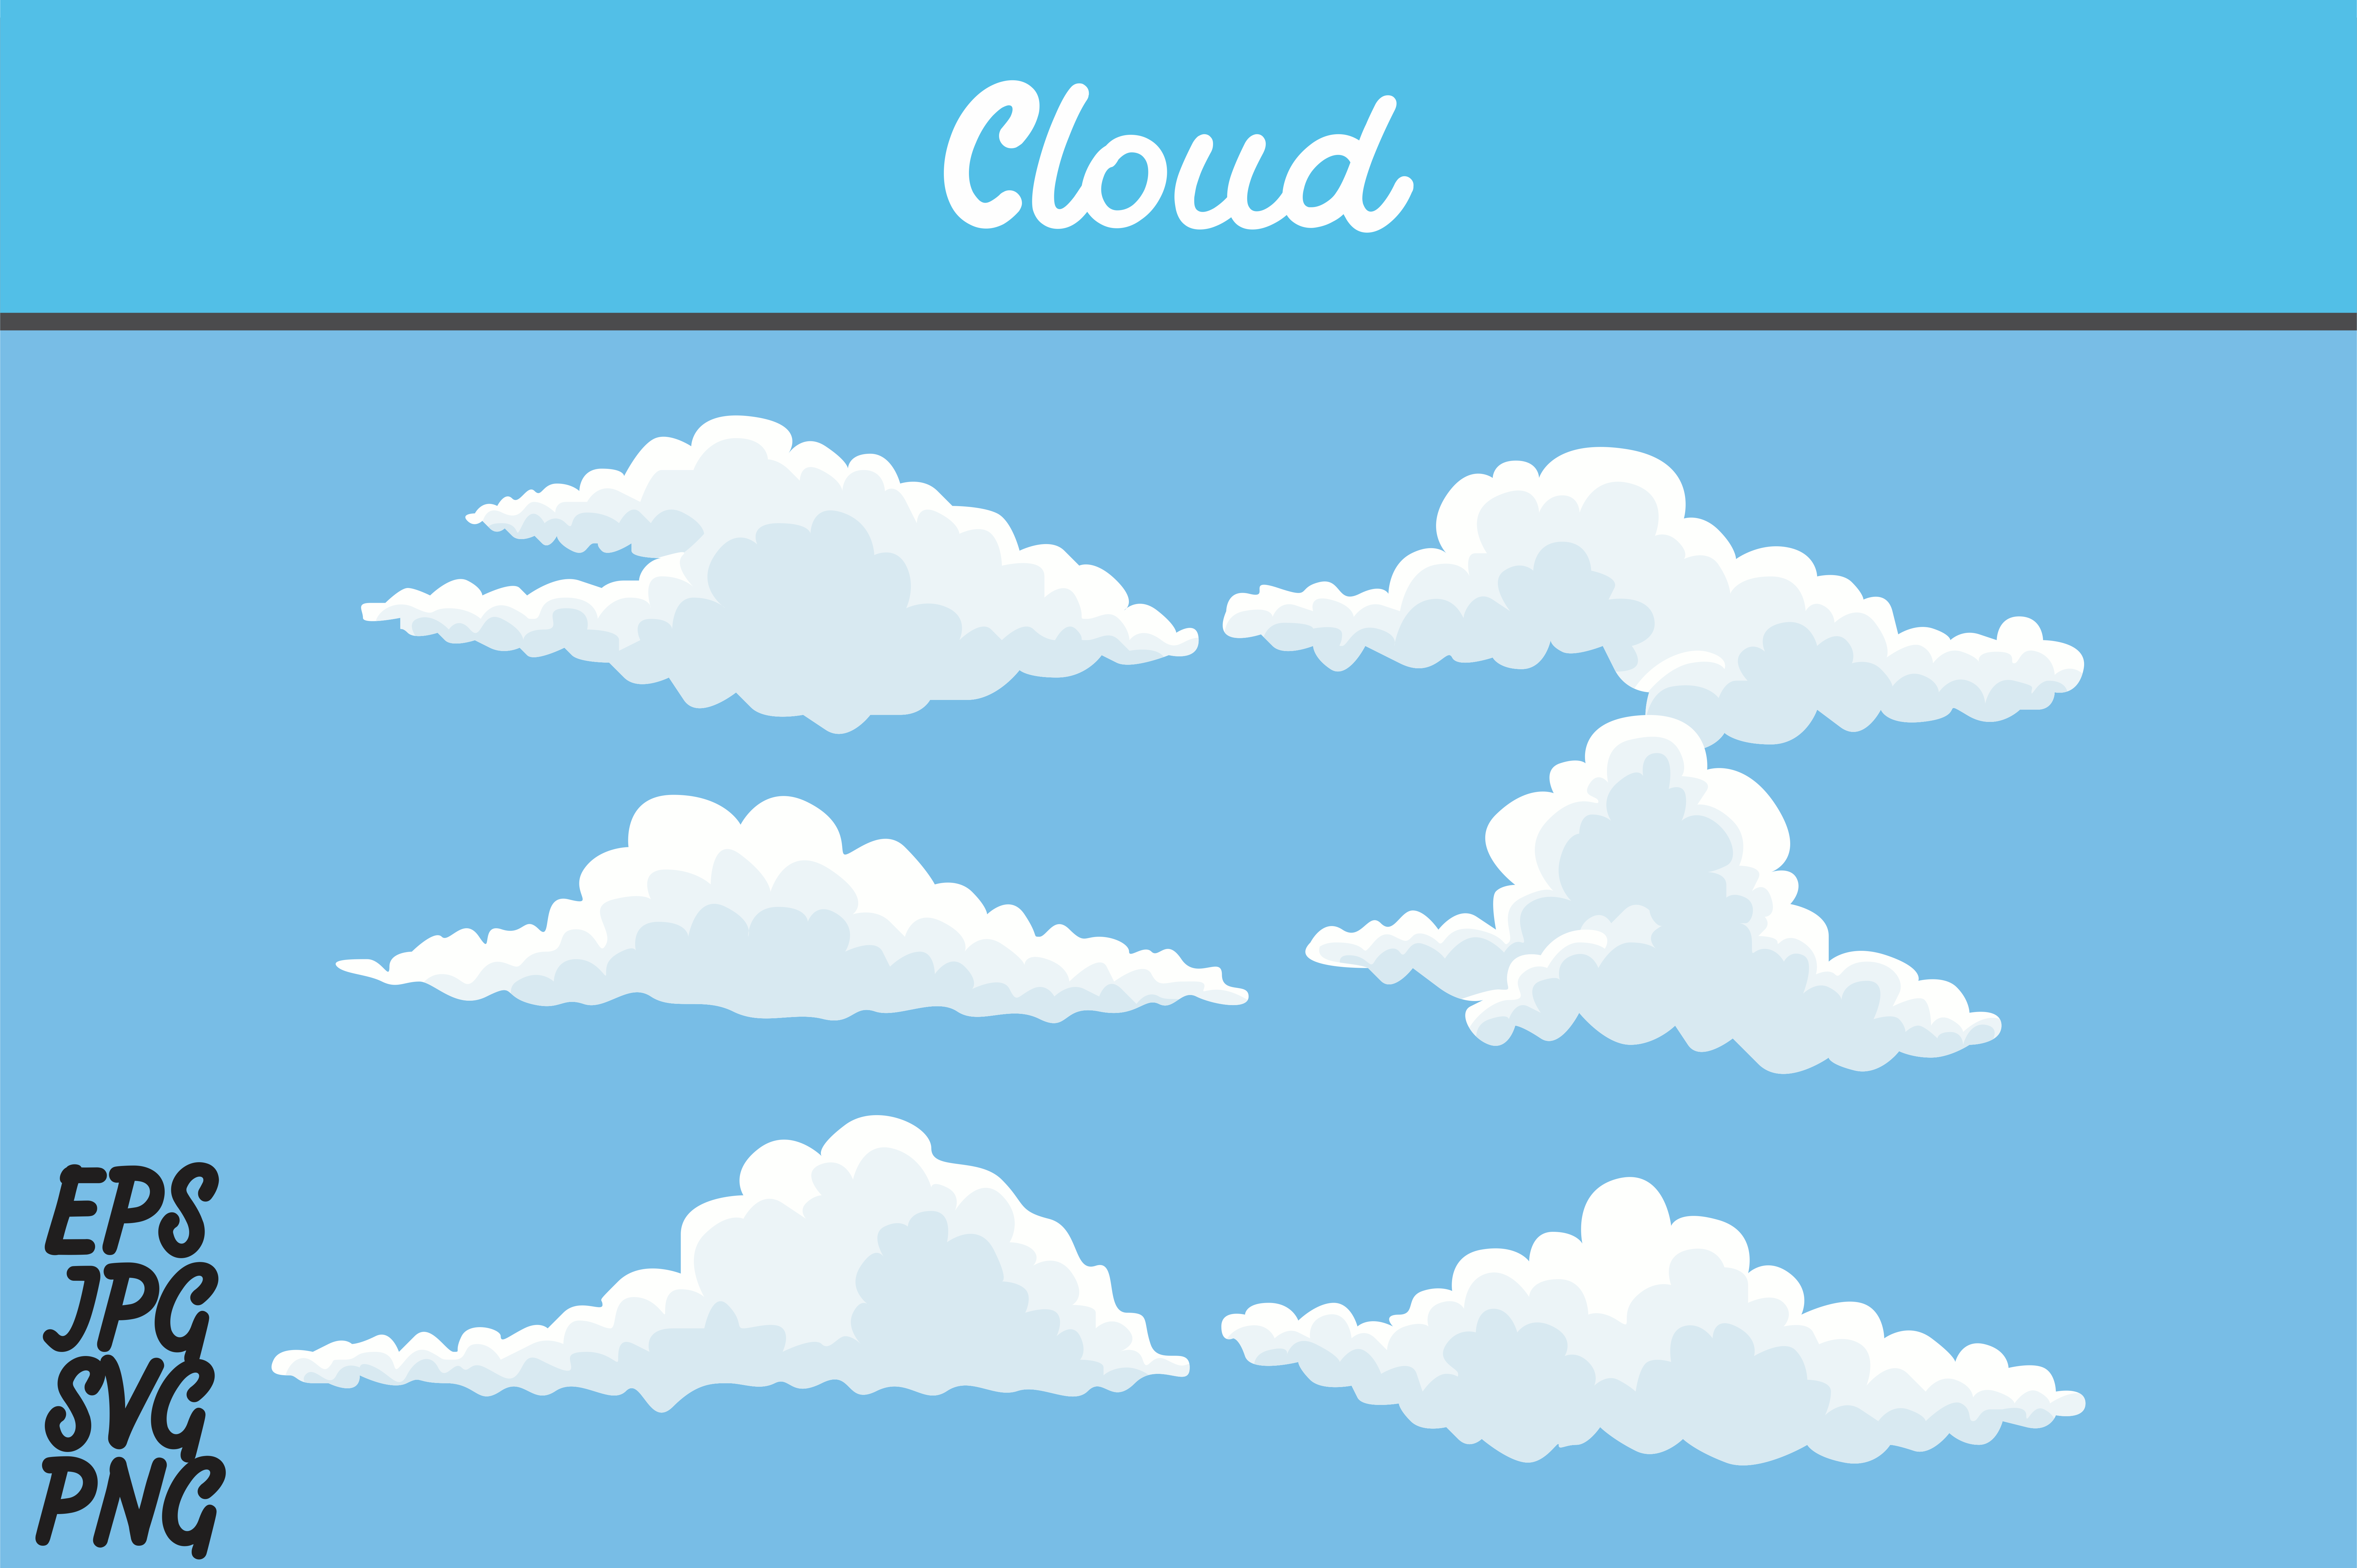 Download Free Cloud Icon Set Svg Vector Image Graphic By Arief Sapta Adjie Creative Fabrica for Cricut Explore, Silhouette and other cutting machines.